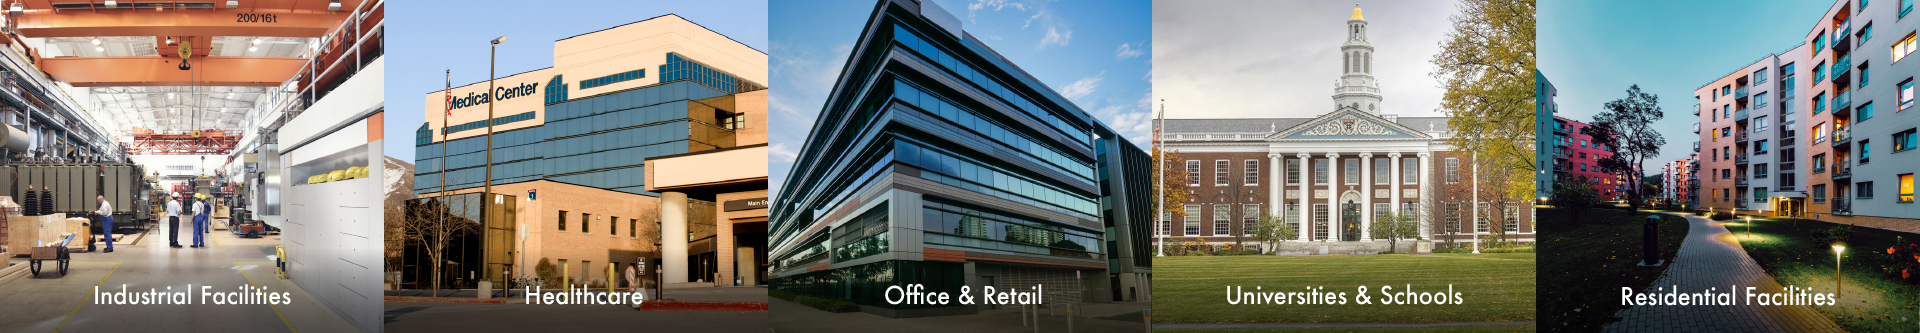 industrial facilities, healthcare clients, universities and K-12, office and retail clients, as well as, multi-tenant residential facilities